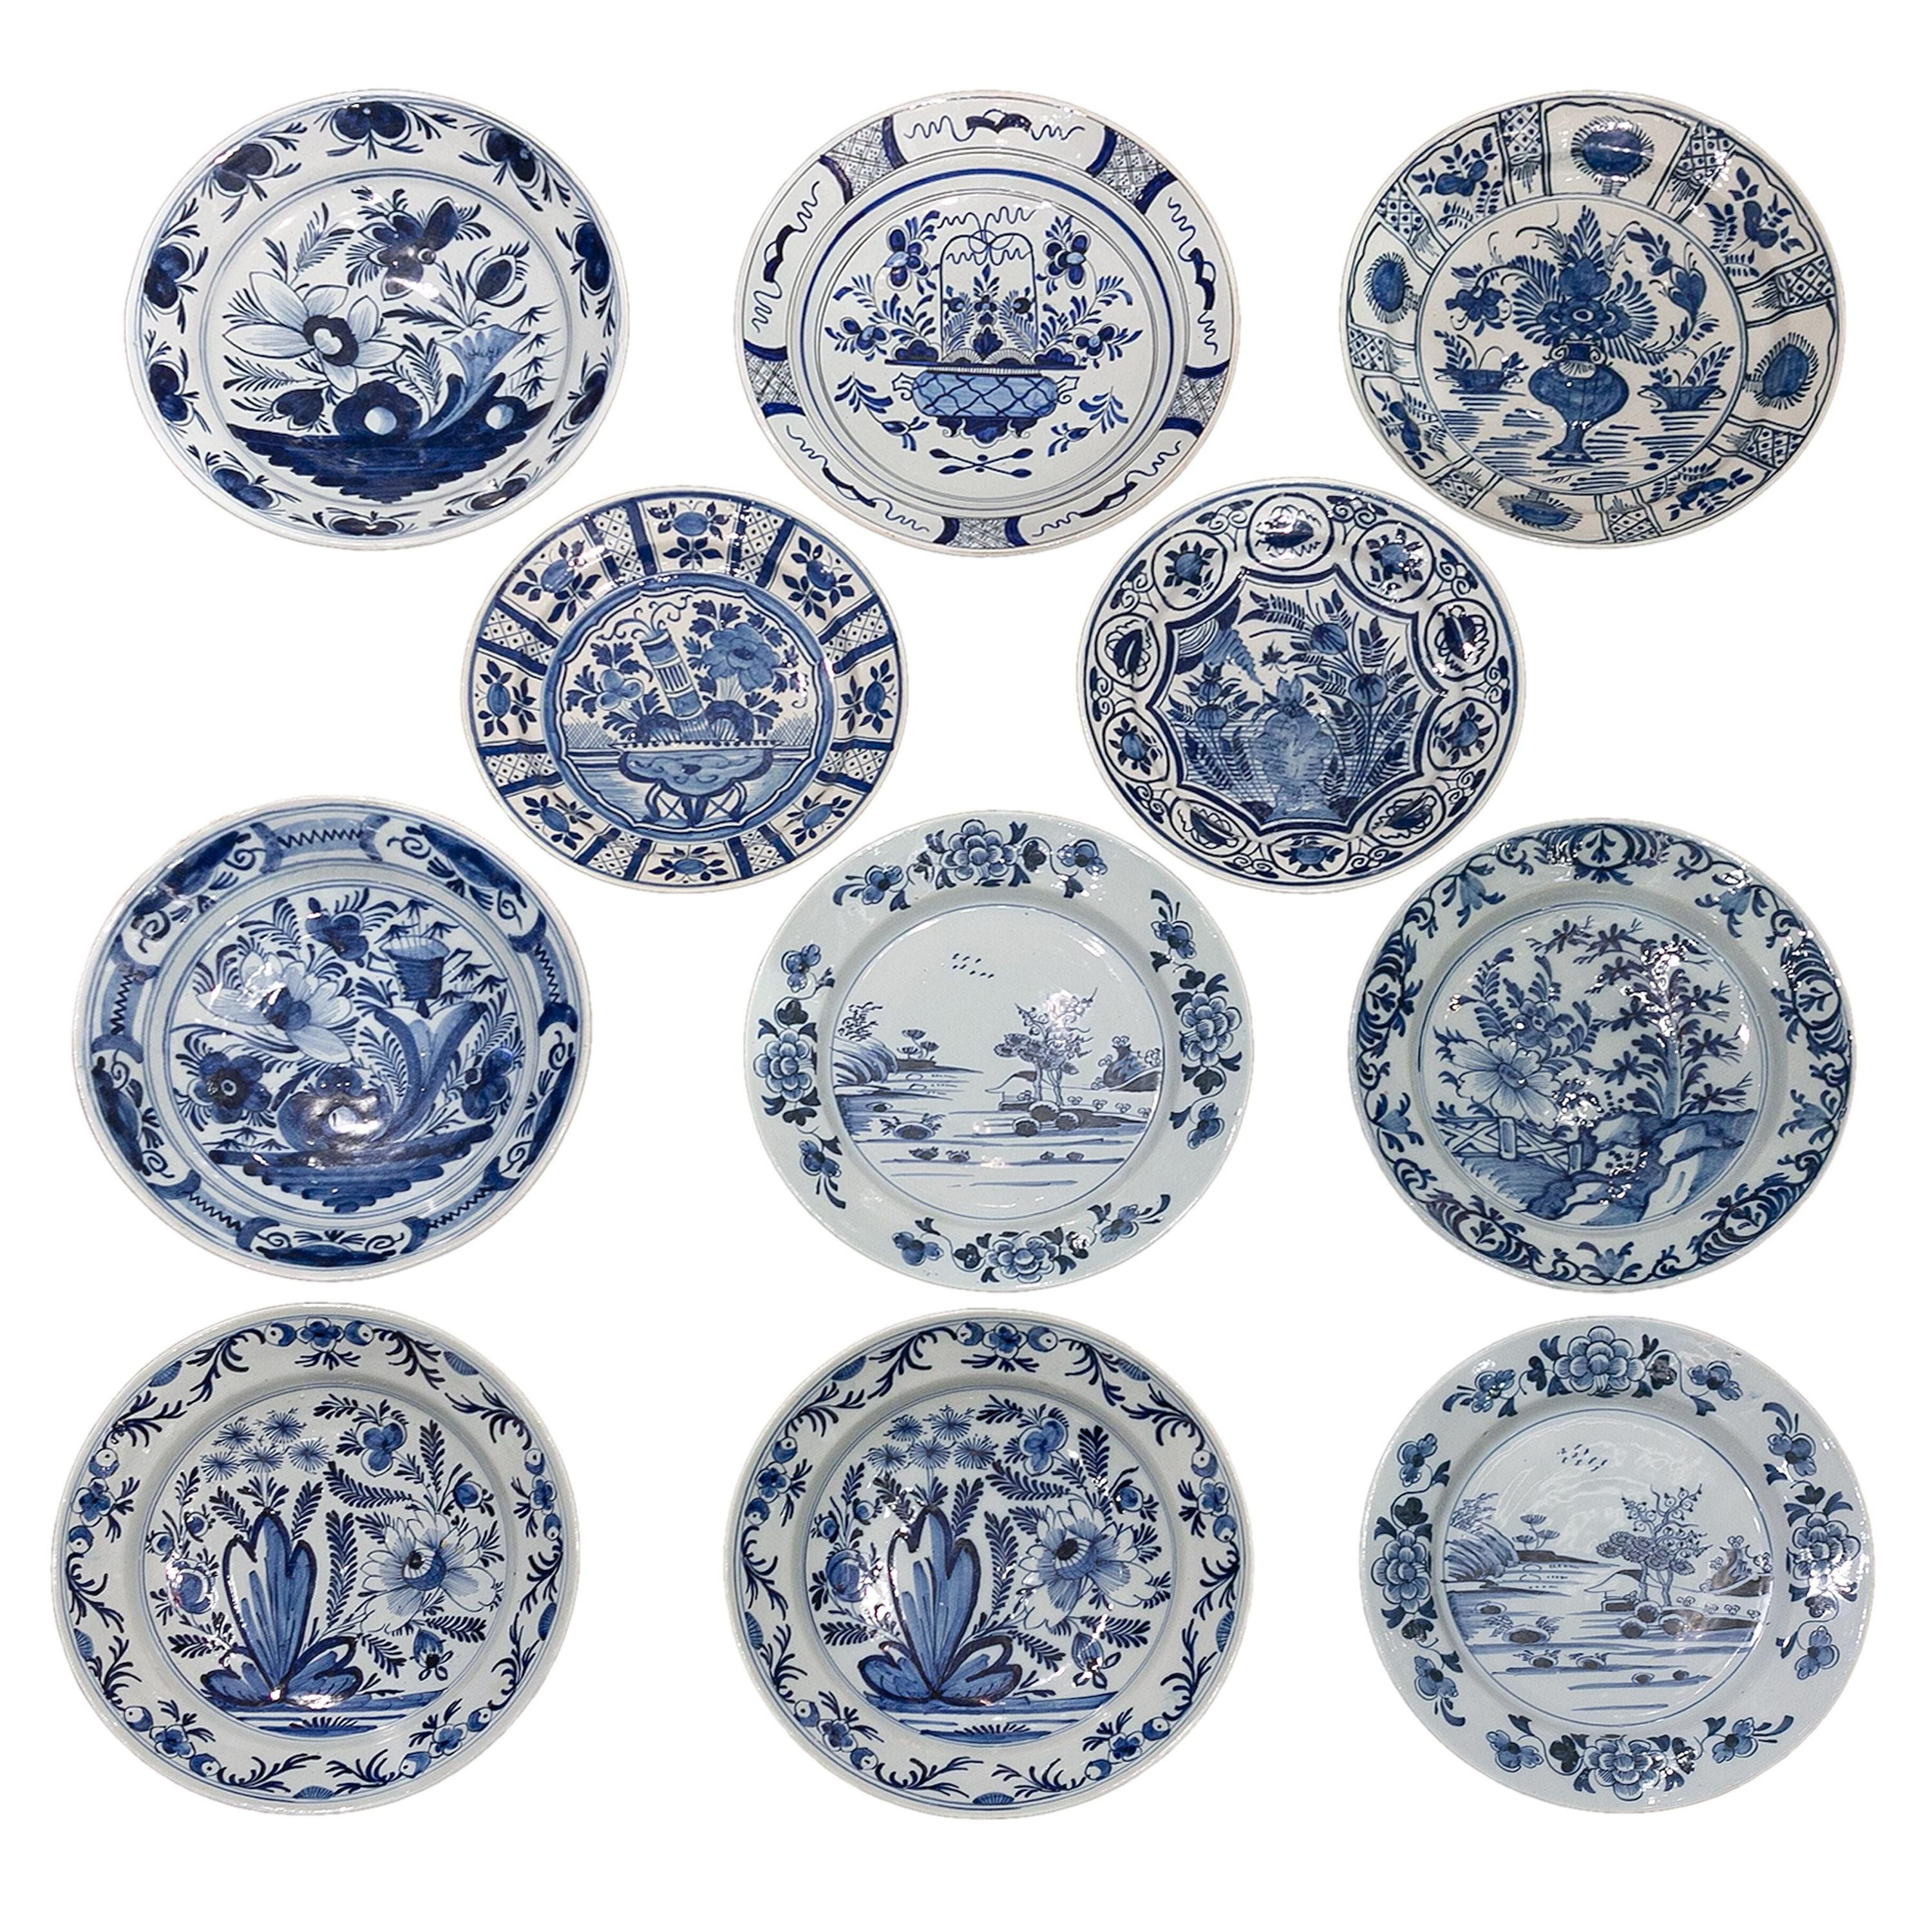 Eleven Large Blue and White Delft Chargers Antique Made Late 18th Century